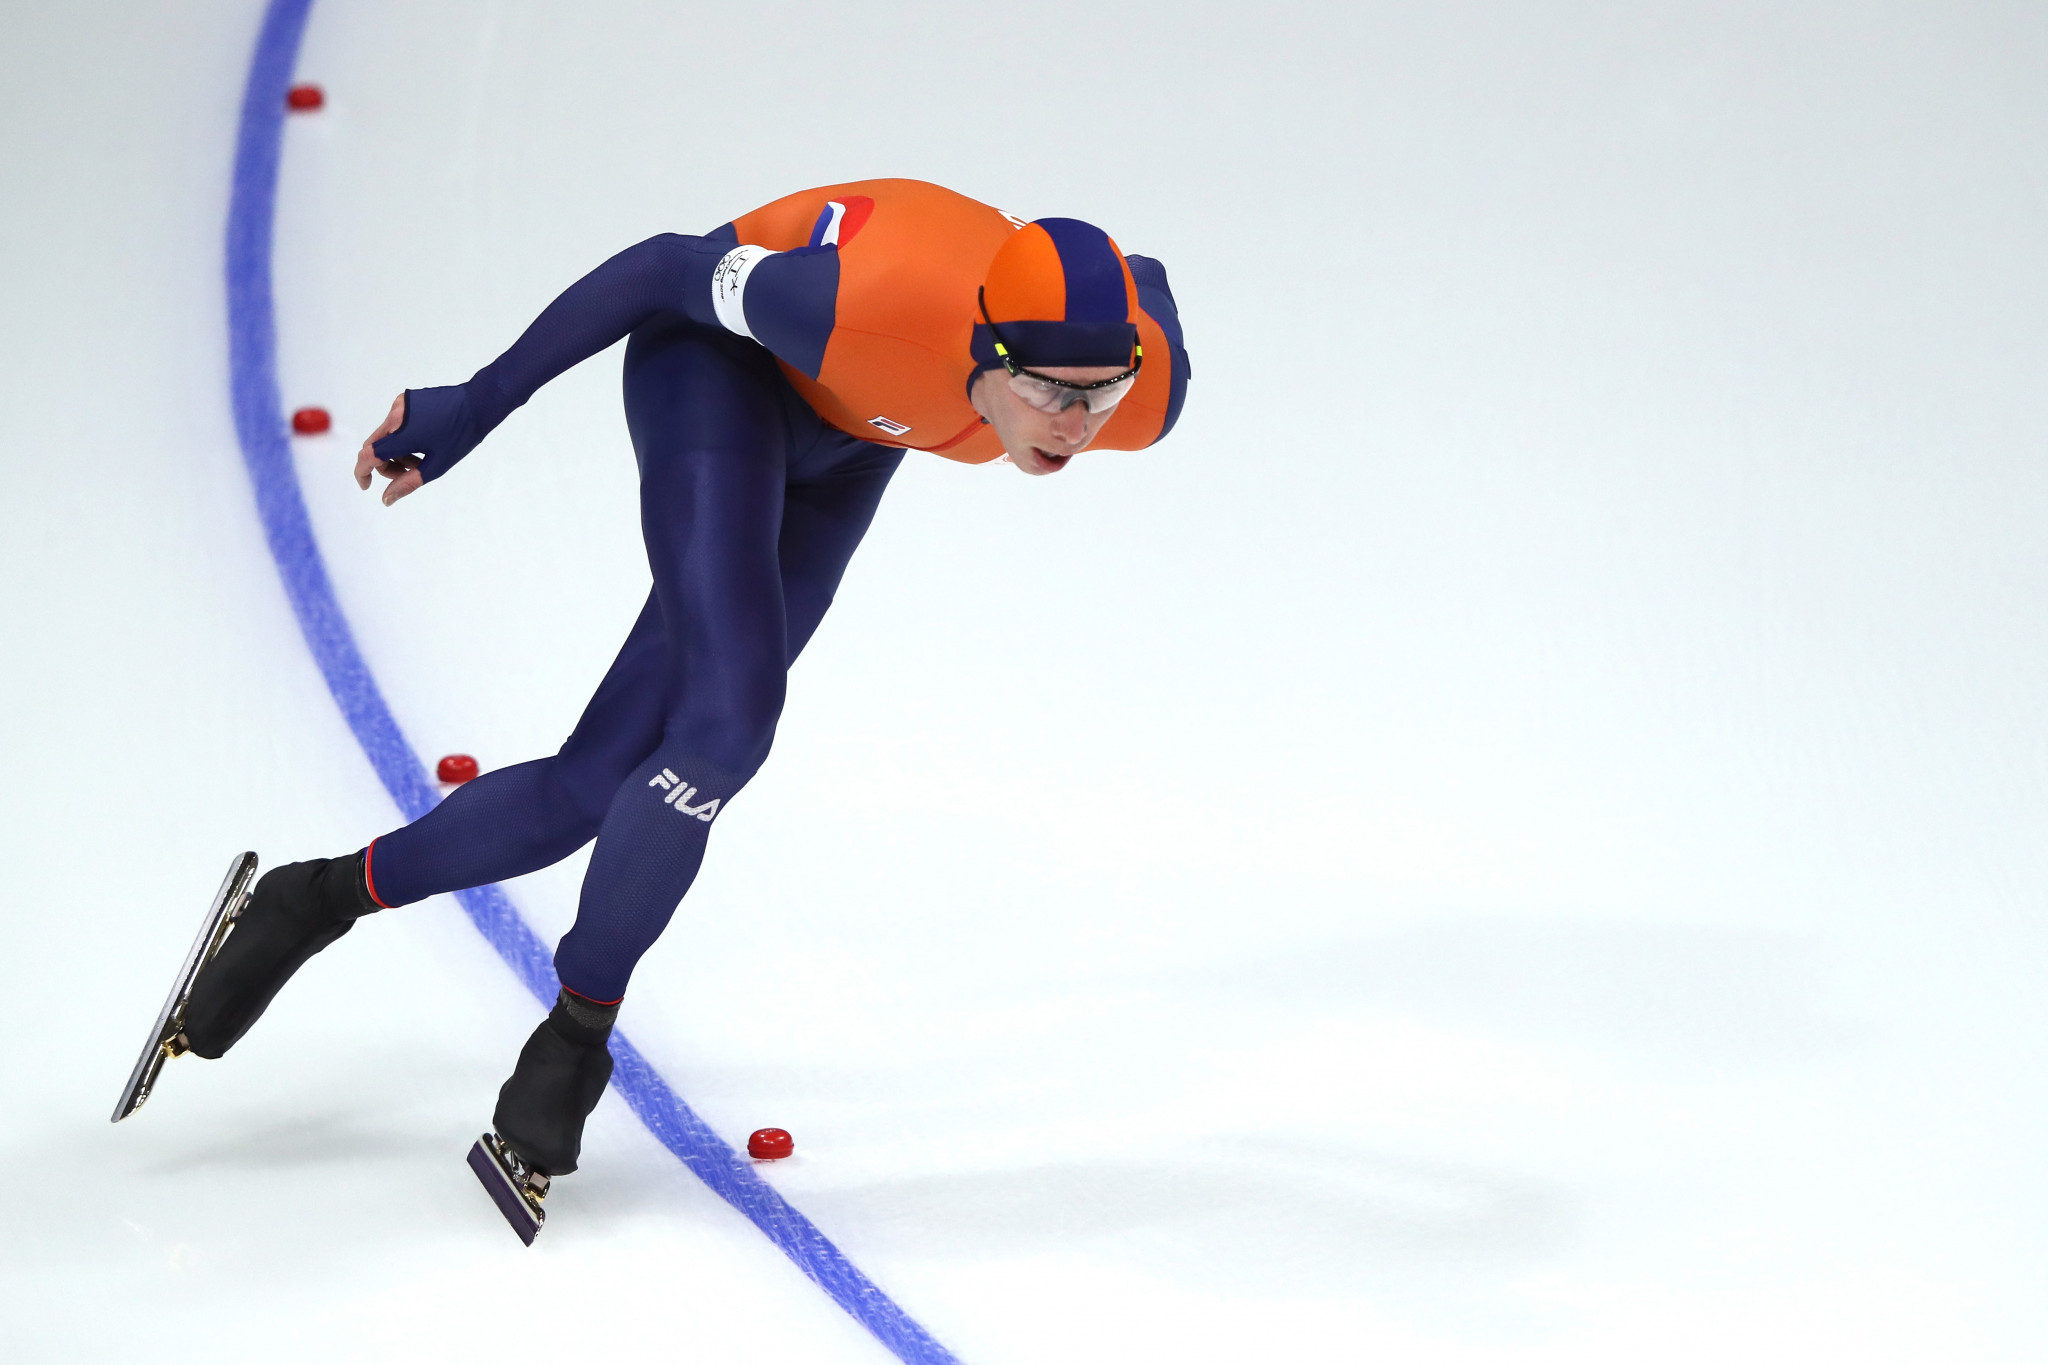 Olympic speedskating: Men's 10000m final results and highlights